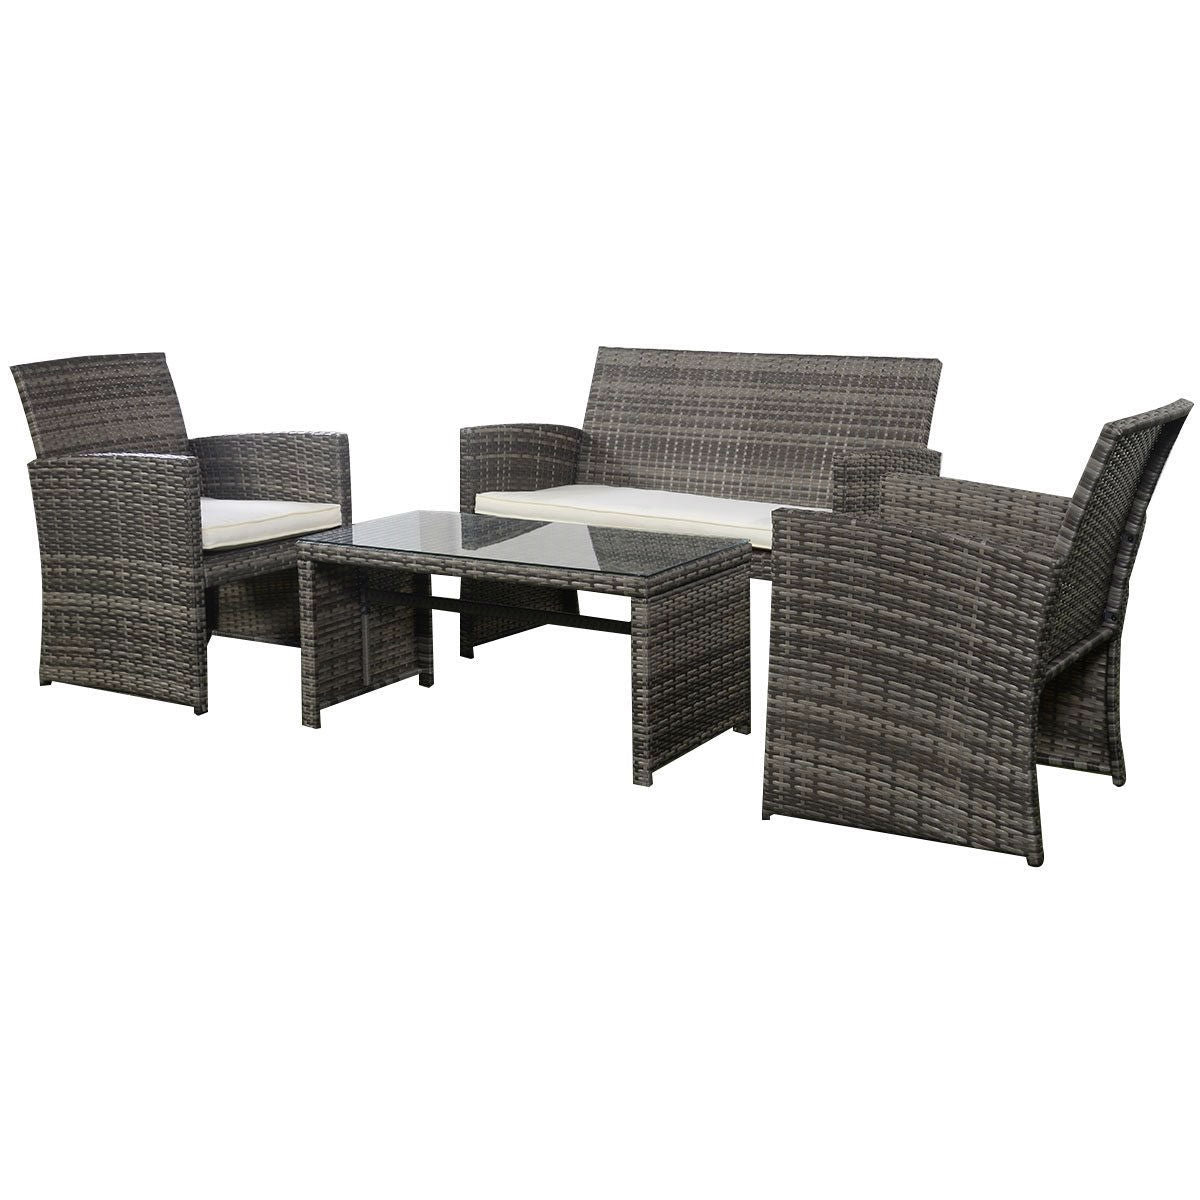 Grey Resin Wicker Rattan 4 Piece Patio Furniture Set With Seat